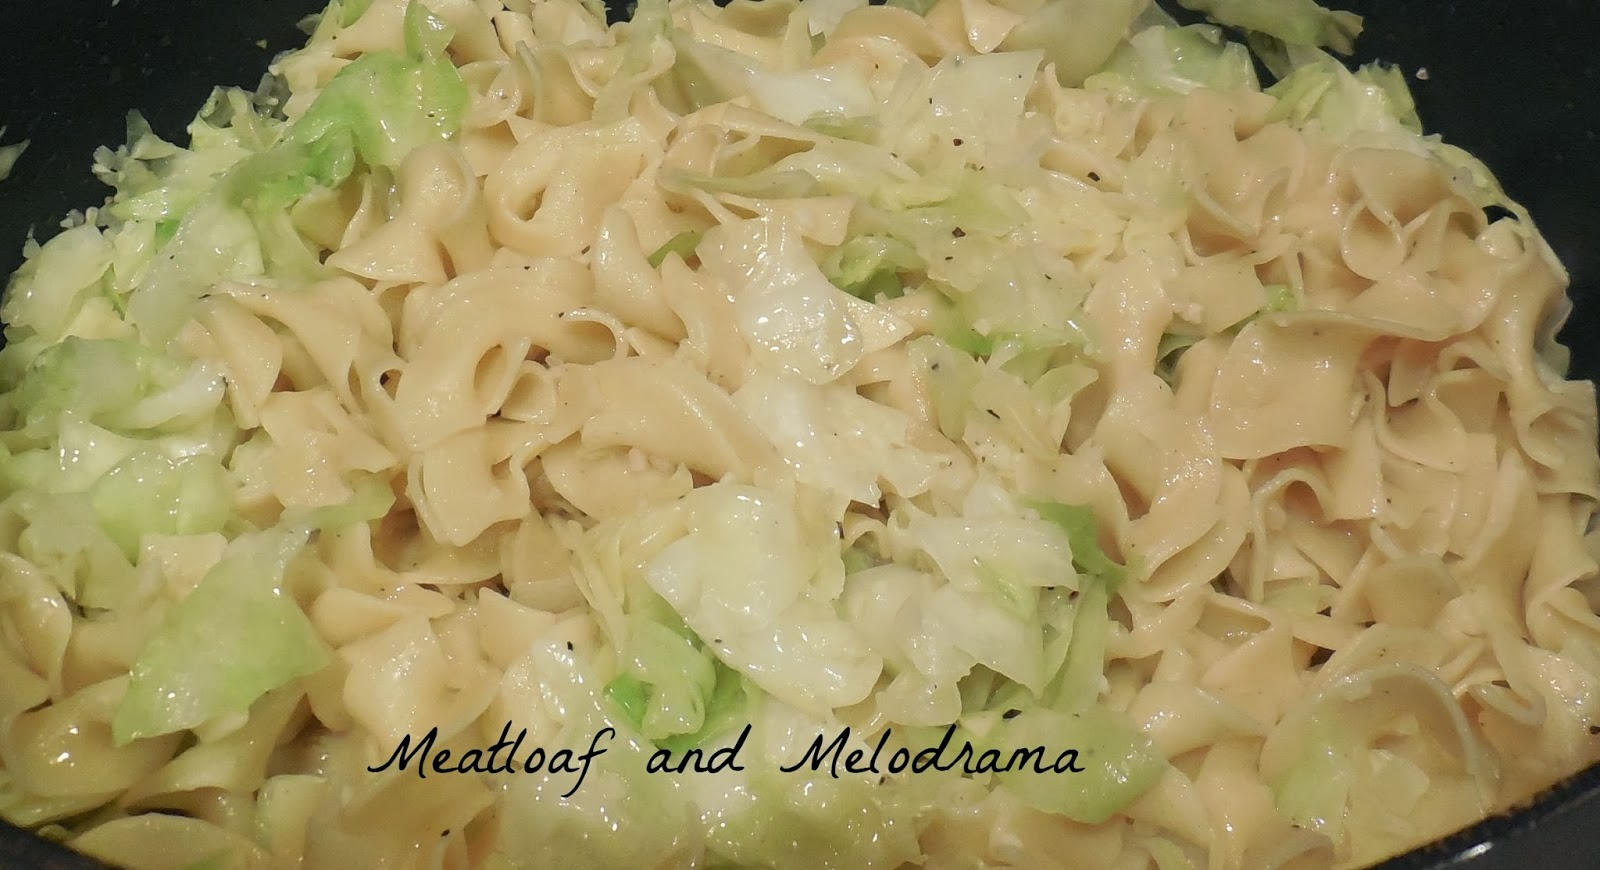 haluski, noodles and cabbage